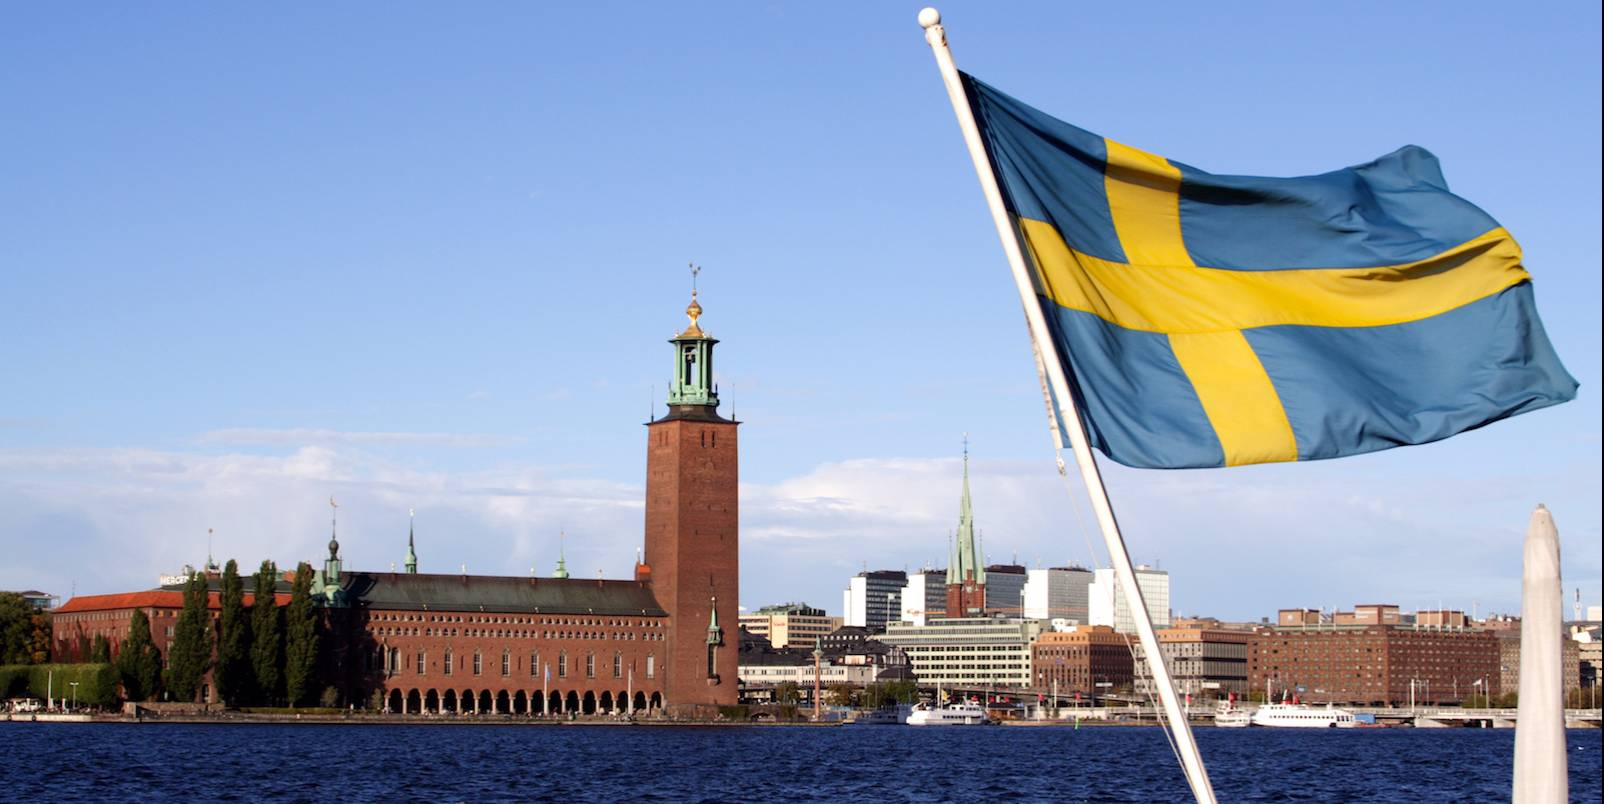 Stockholm City Hall 03